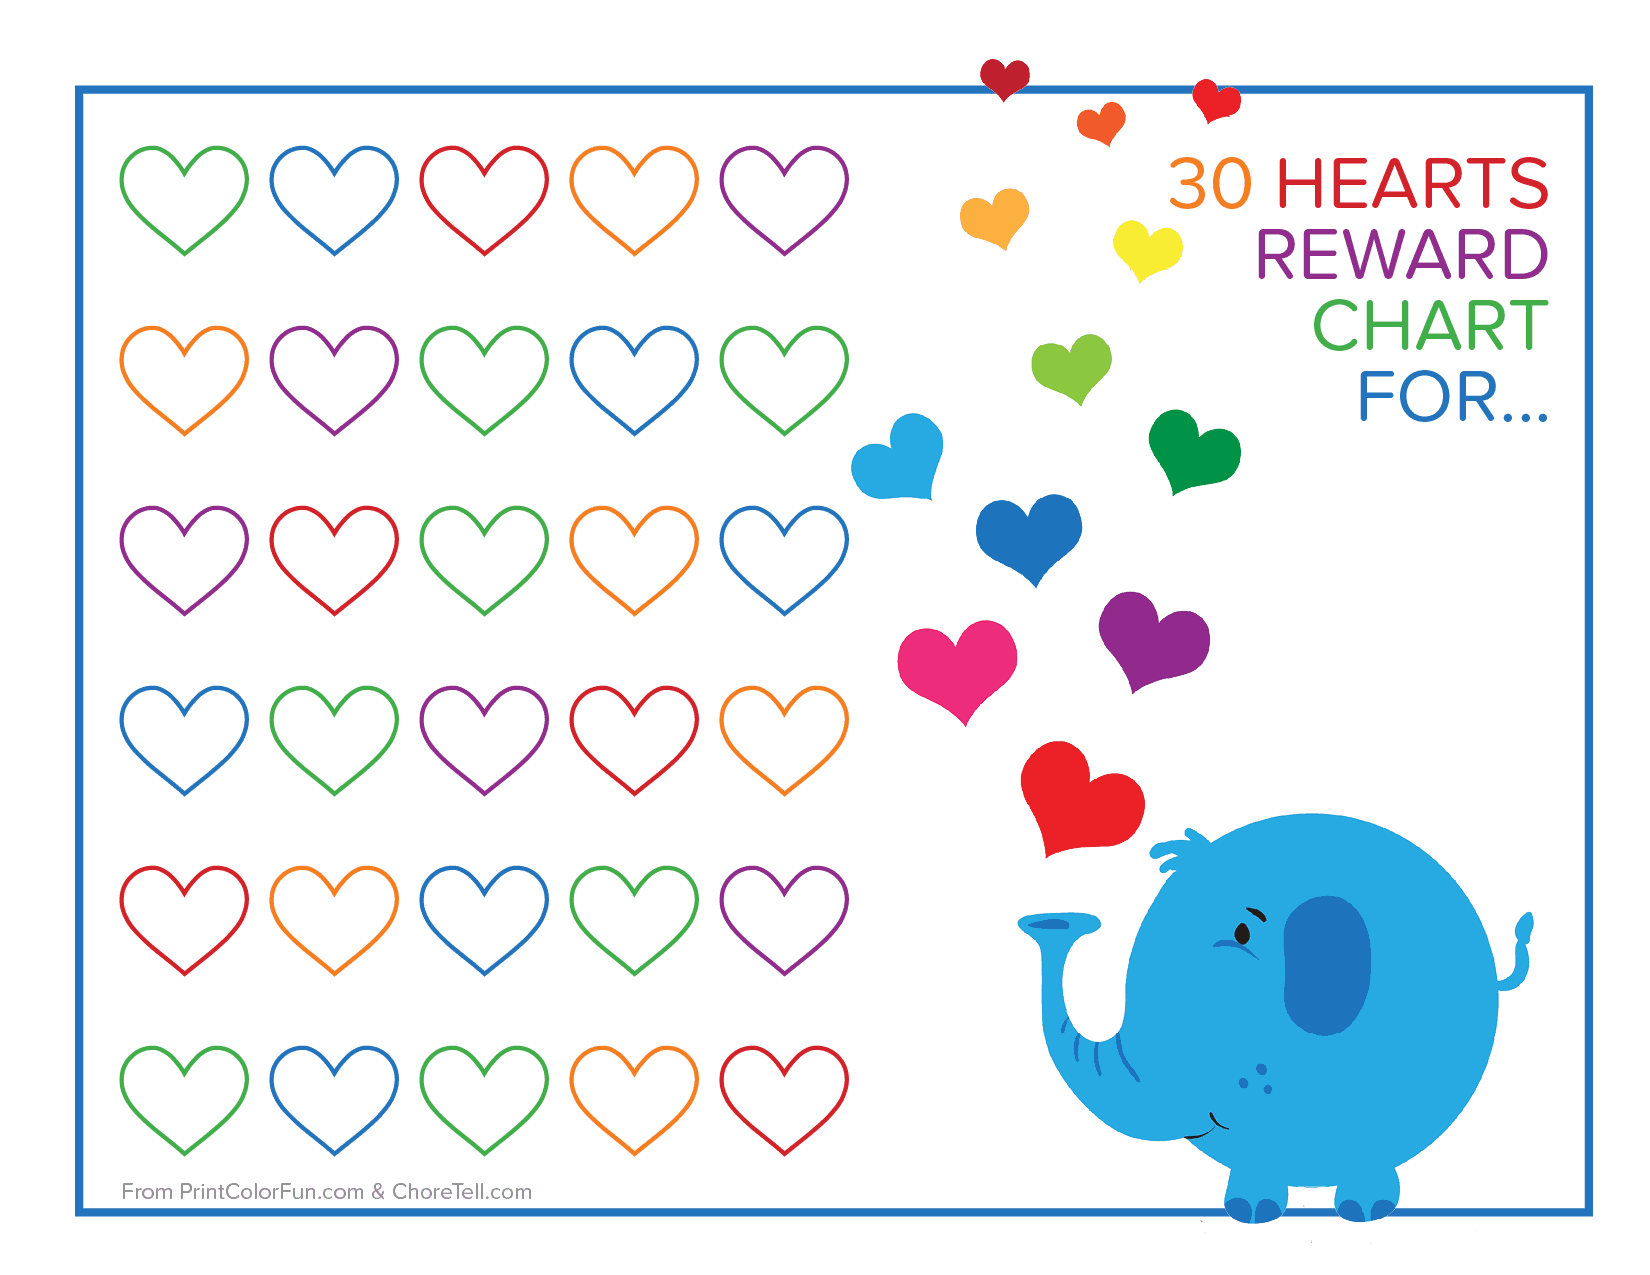 photo relating to Free Printable Reward Chart called Elephant and rainbow hearts advantage chart - No cost printable